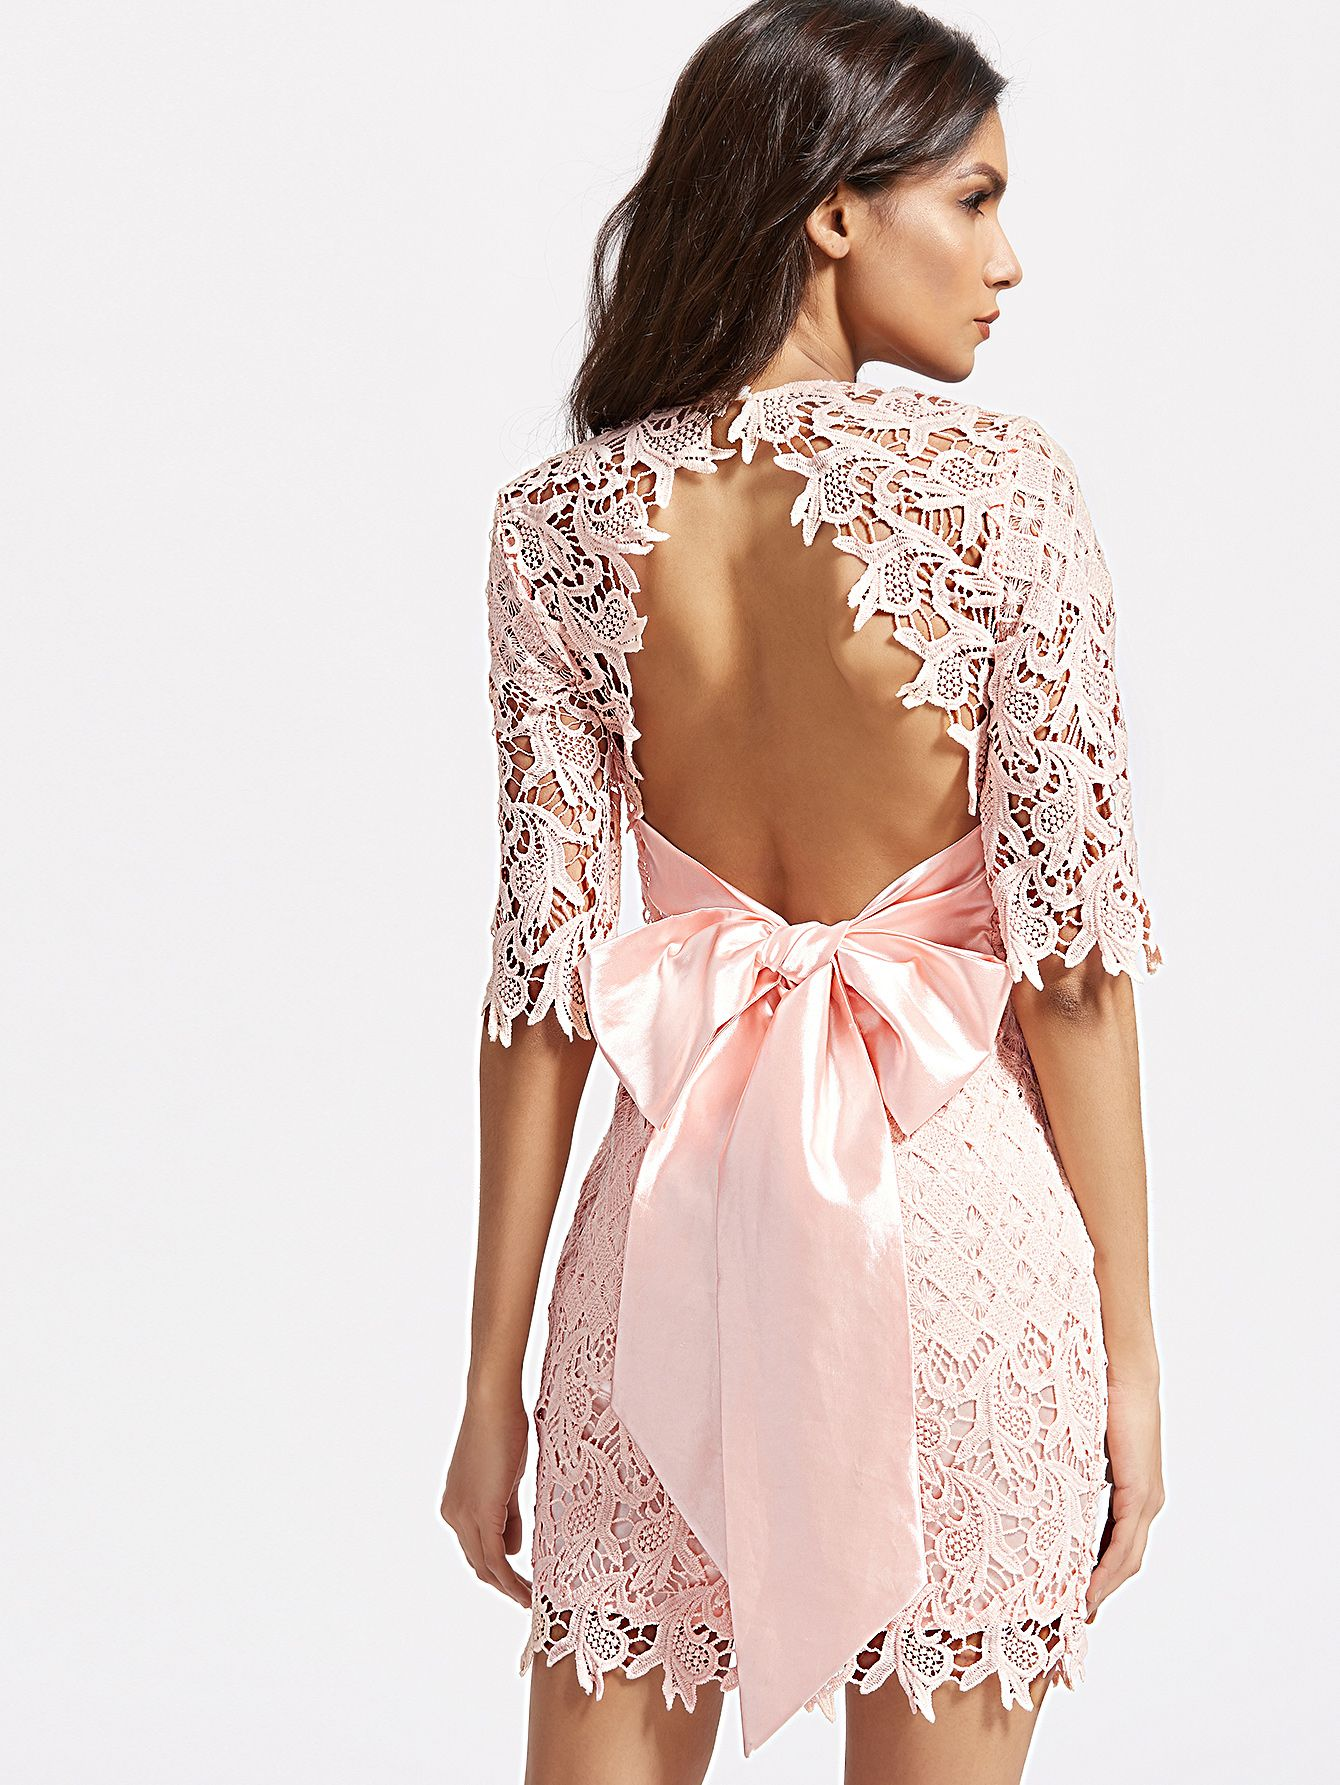 e519a077047c Shop Pink Half Sleeve Bow Tie Open Back Embroidered Lace Dress ...